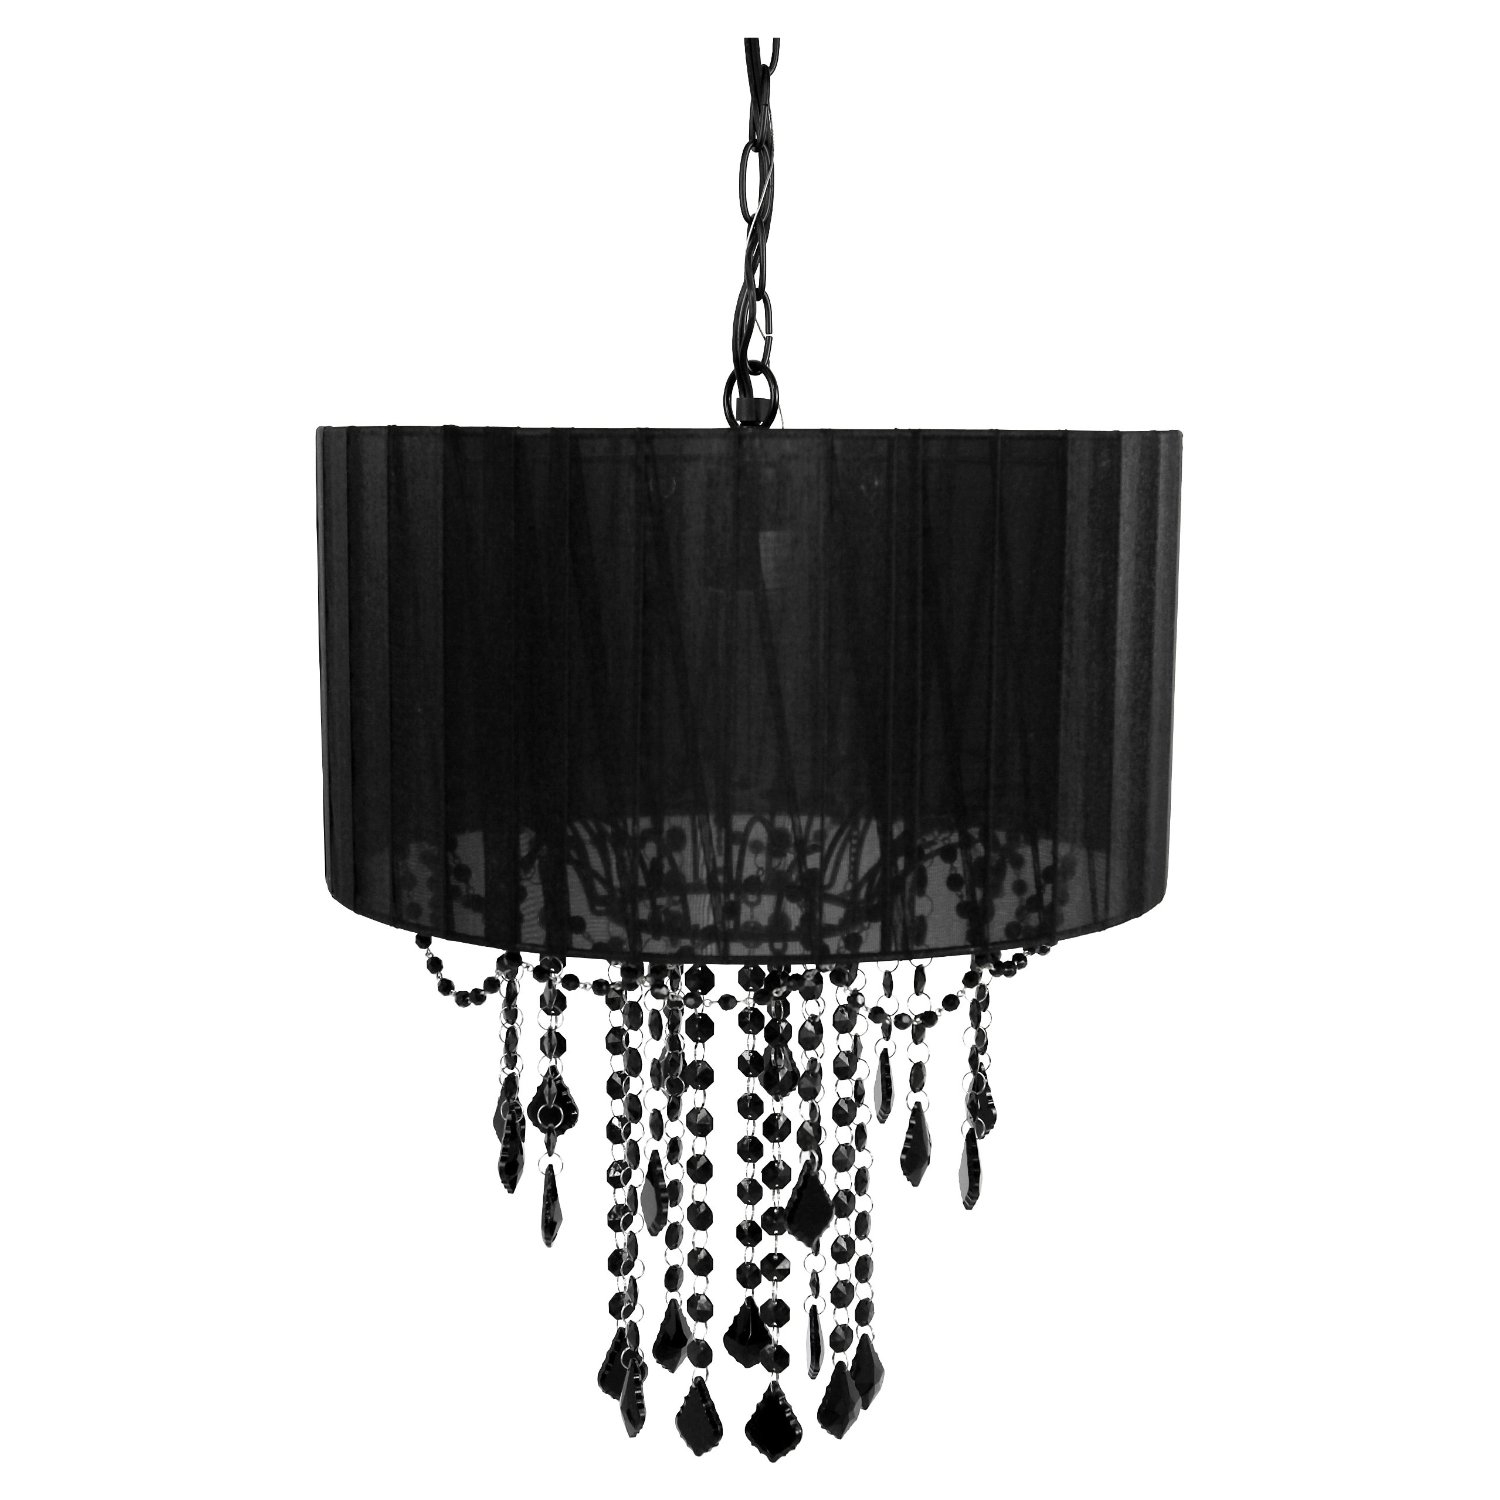 Black Chandeliers For Bedroom Lighting Style Courtagerivegauche Regarding Black Chandeliers (Image 5 of 15)